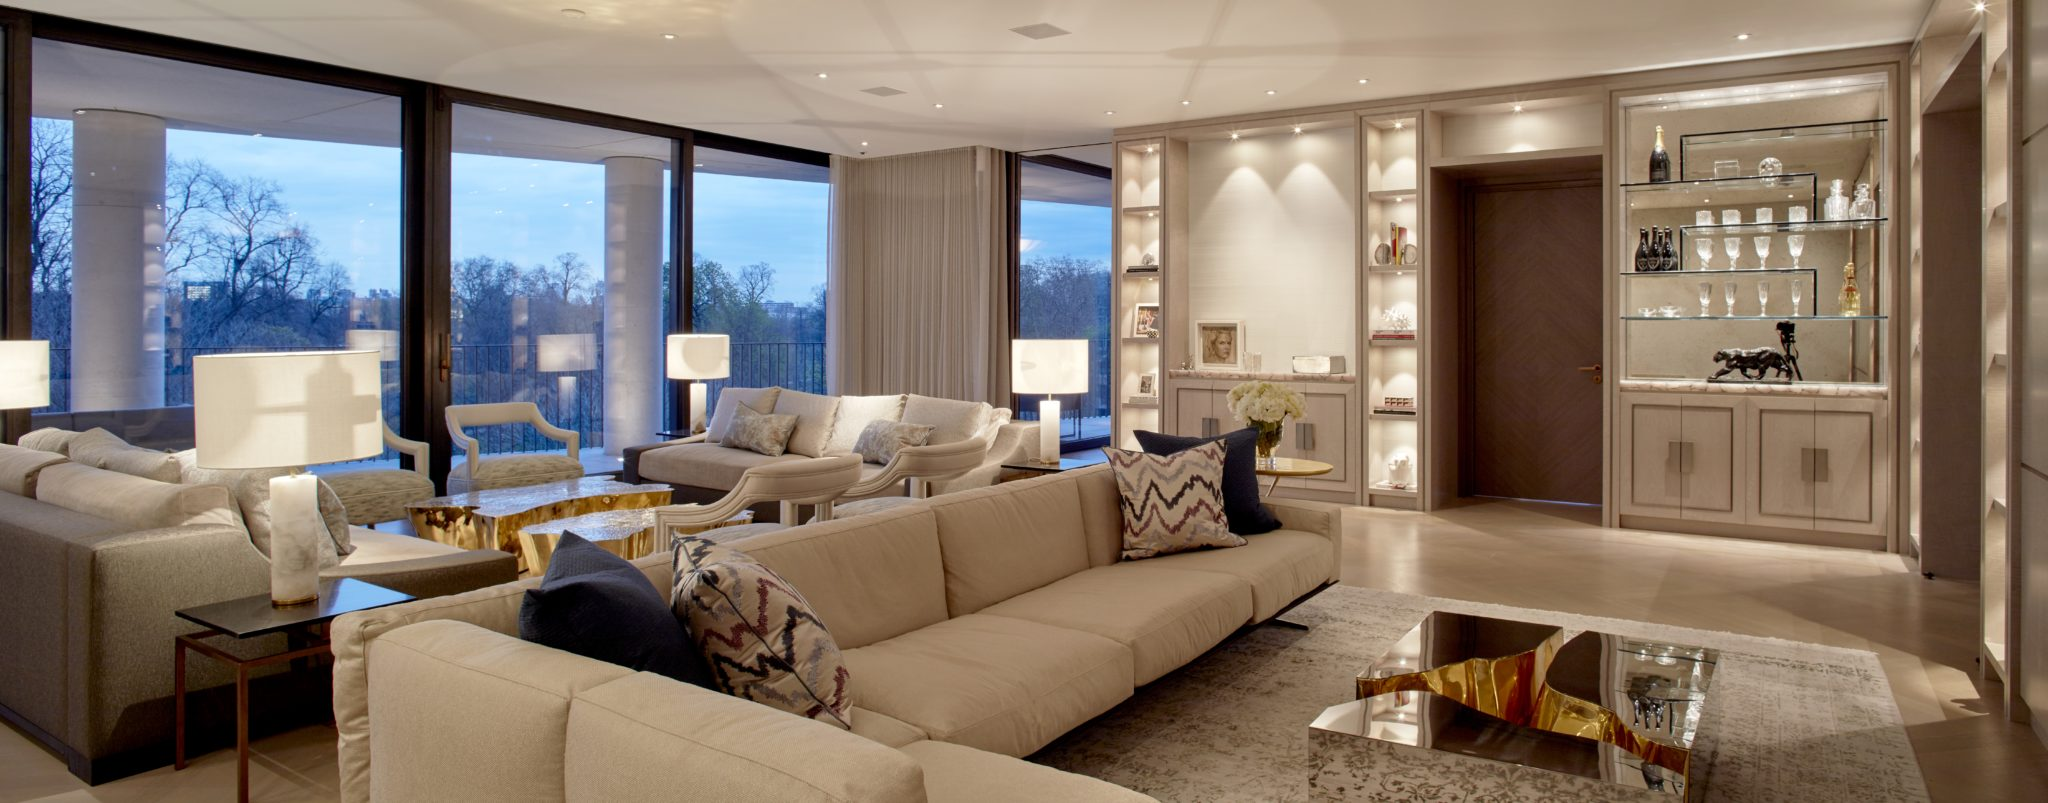 Kensington luxury apartment featuring architecture by Rigby & Rigby